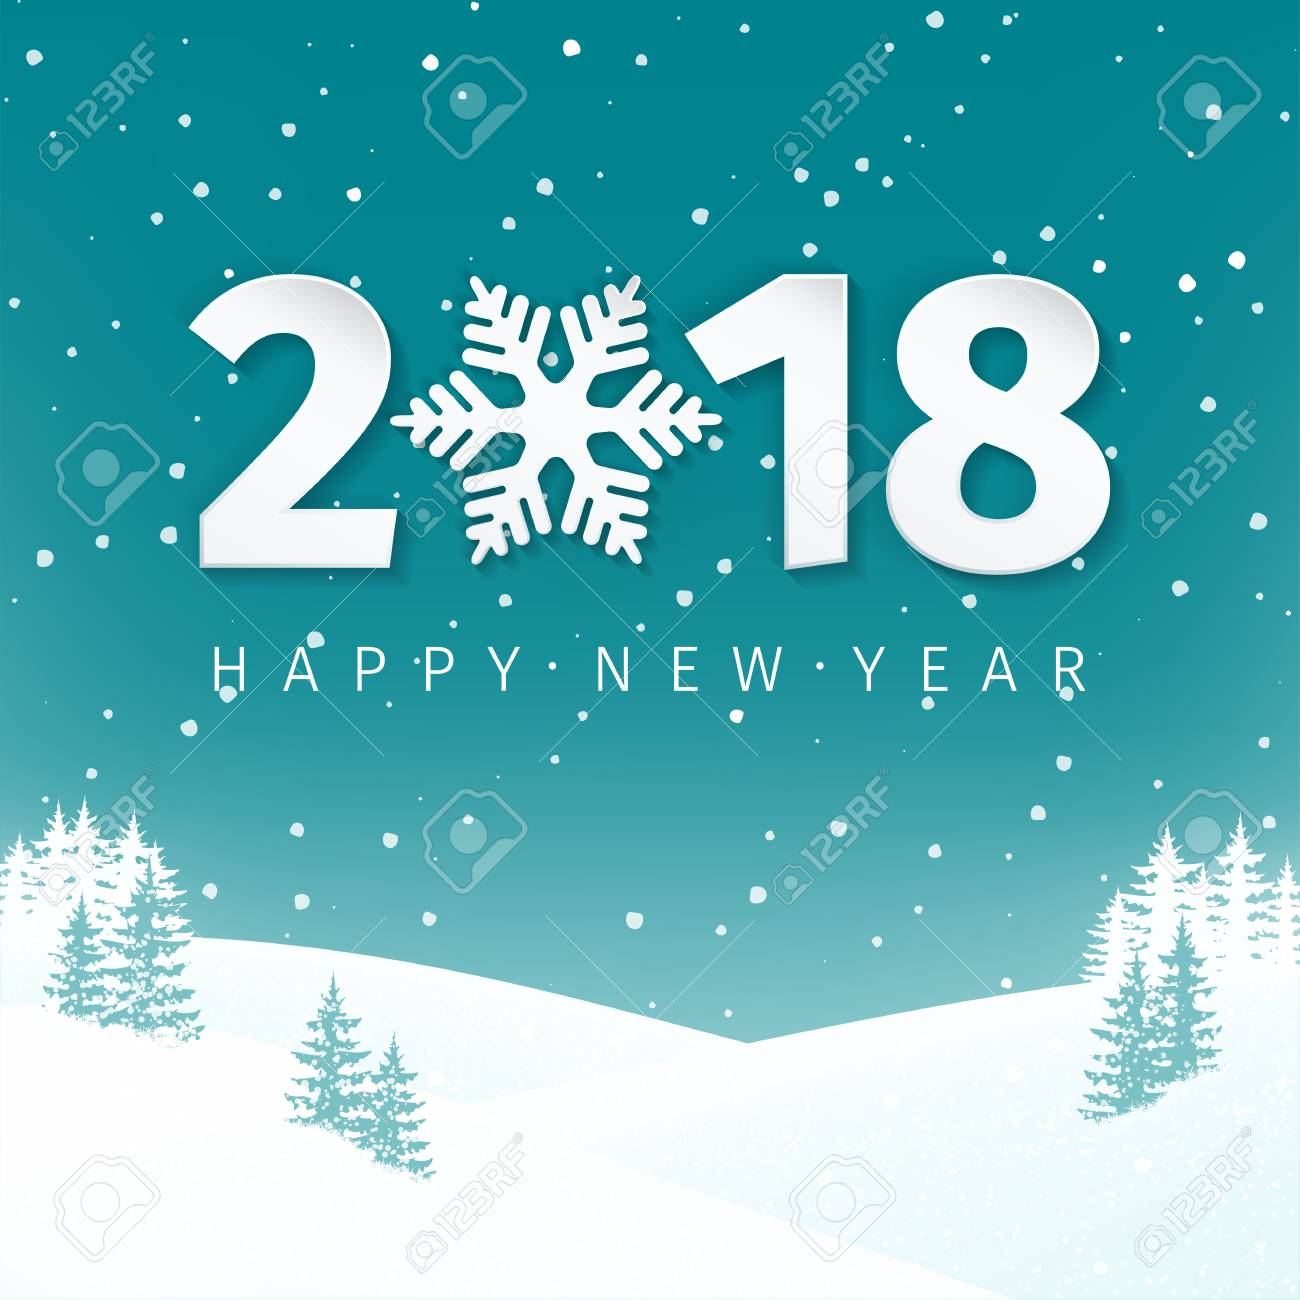 night winter scene landscape background with snowy field and fir trees happy new year 2018